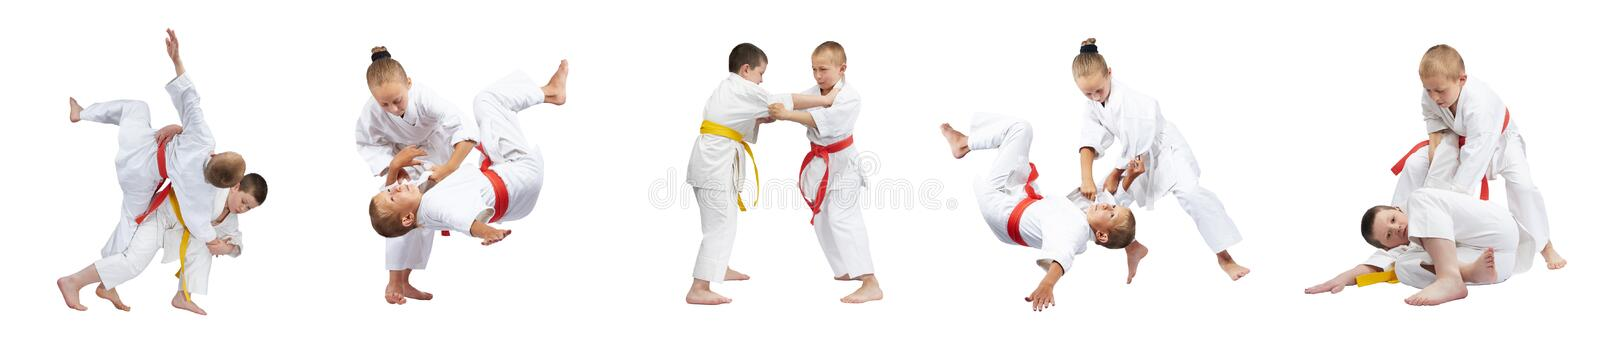 Throws Judo are performing athletes in judogi collage royalty free stock image